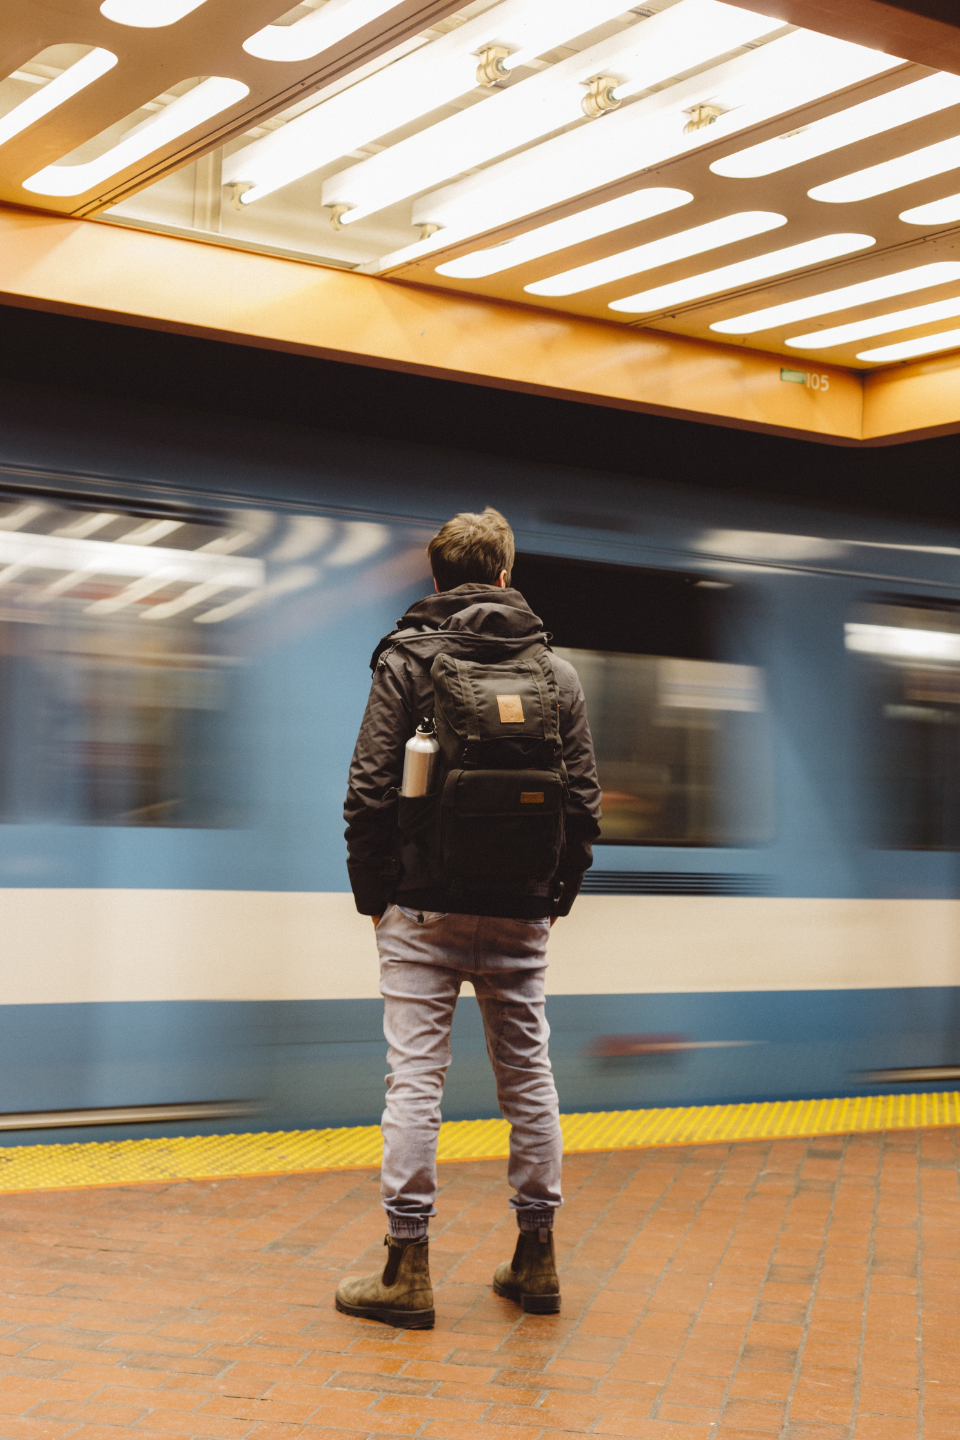 Free stock photo of commuter waiting